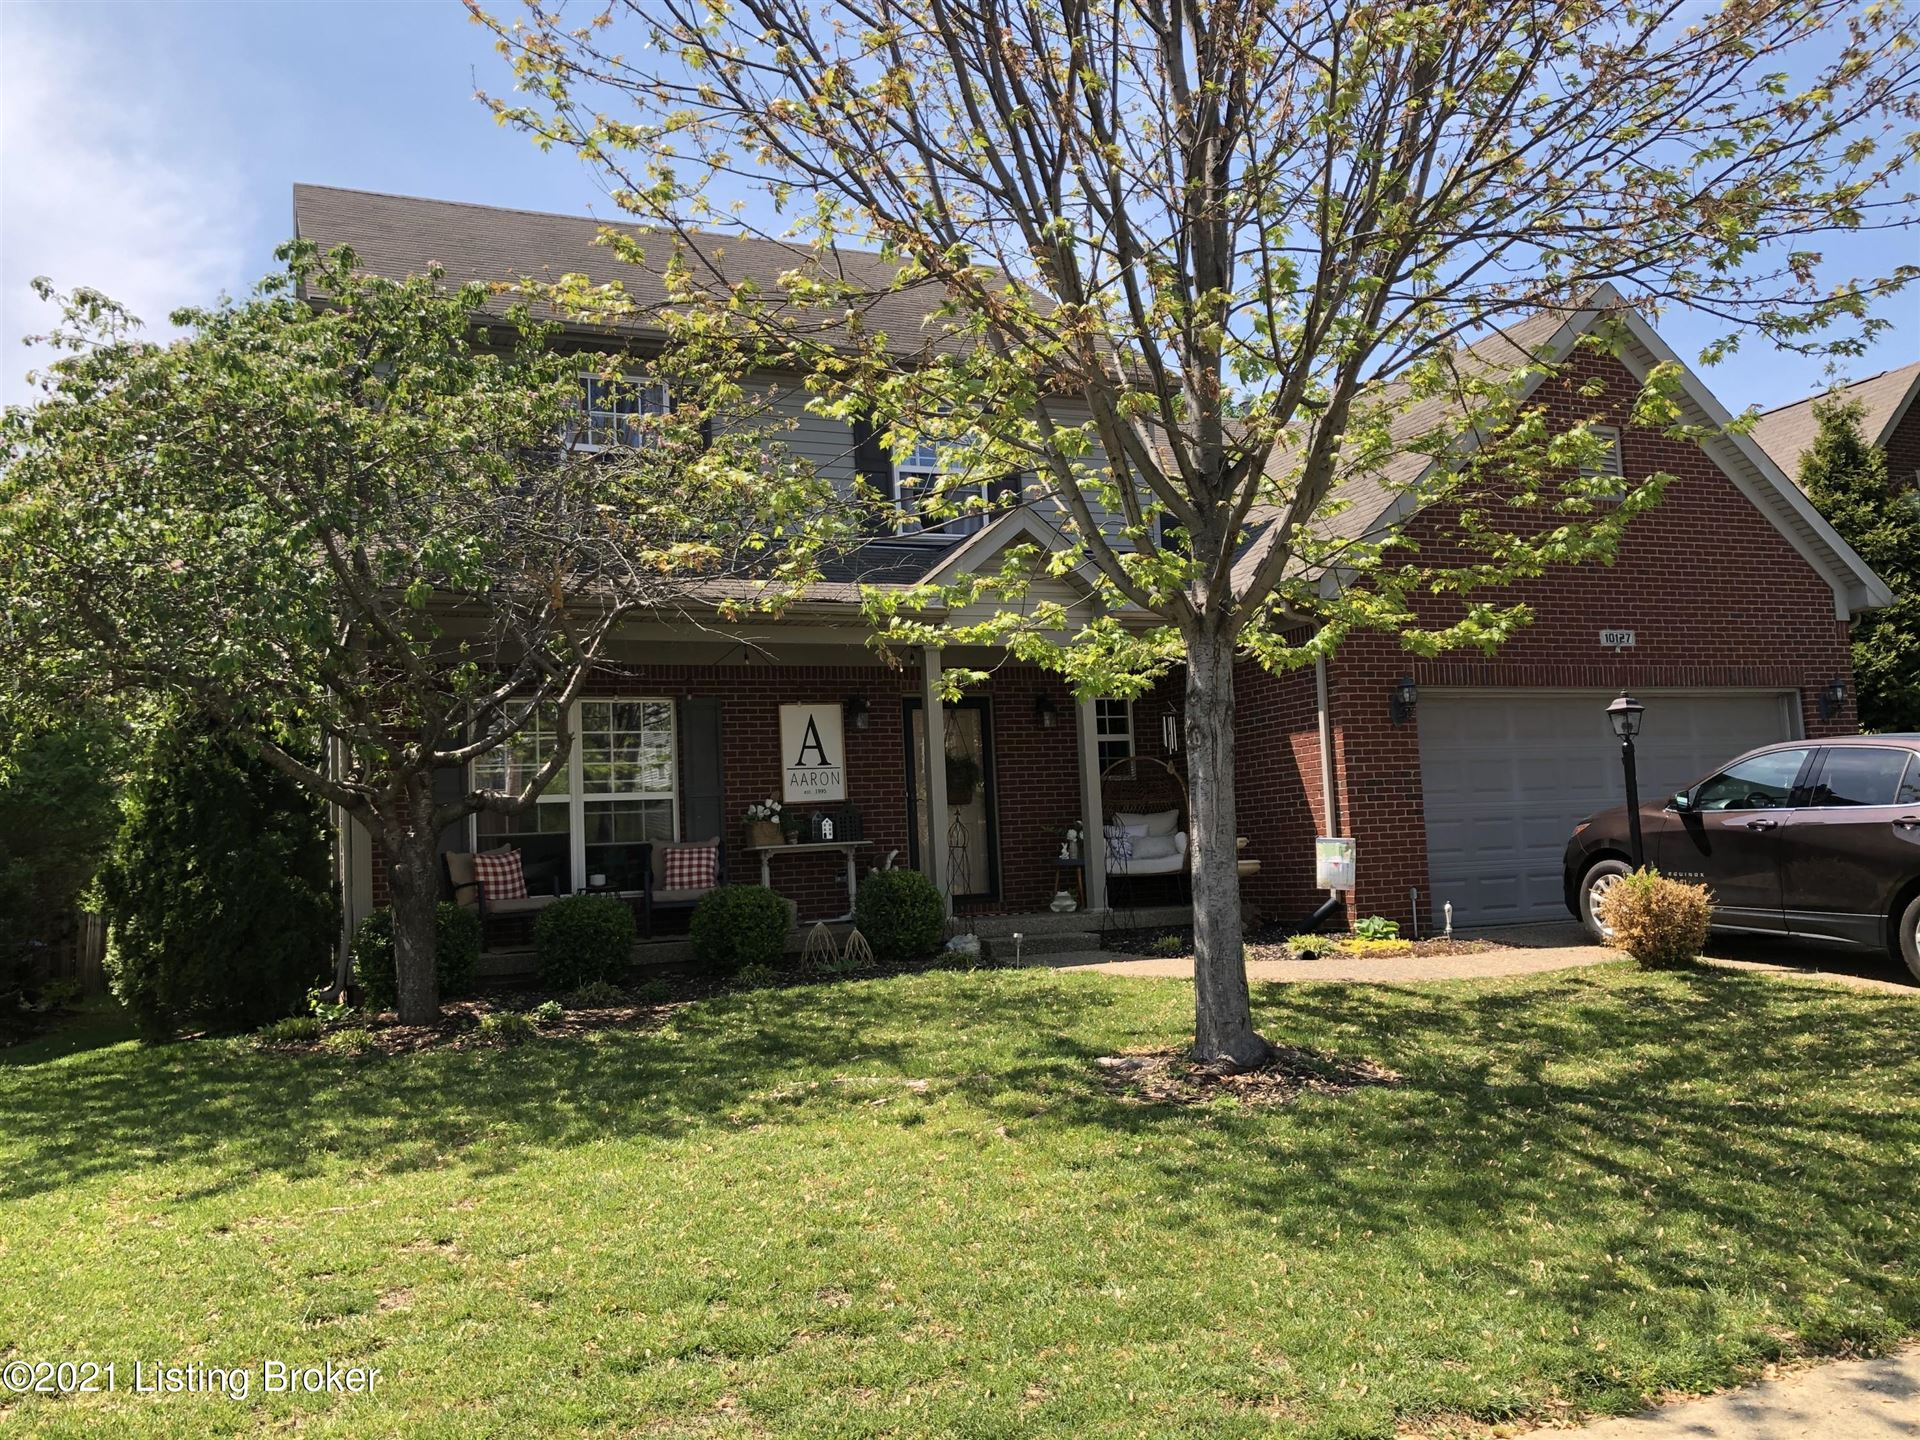 Photo for 10127 Spring Gate Dr, Louisville, KY 40241 (MLS # 1584481)